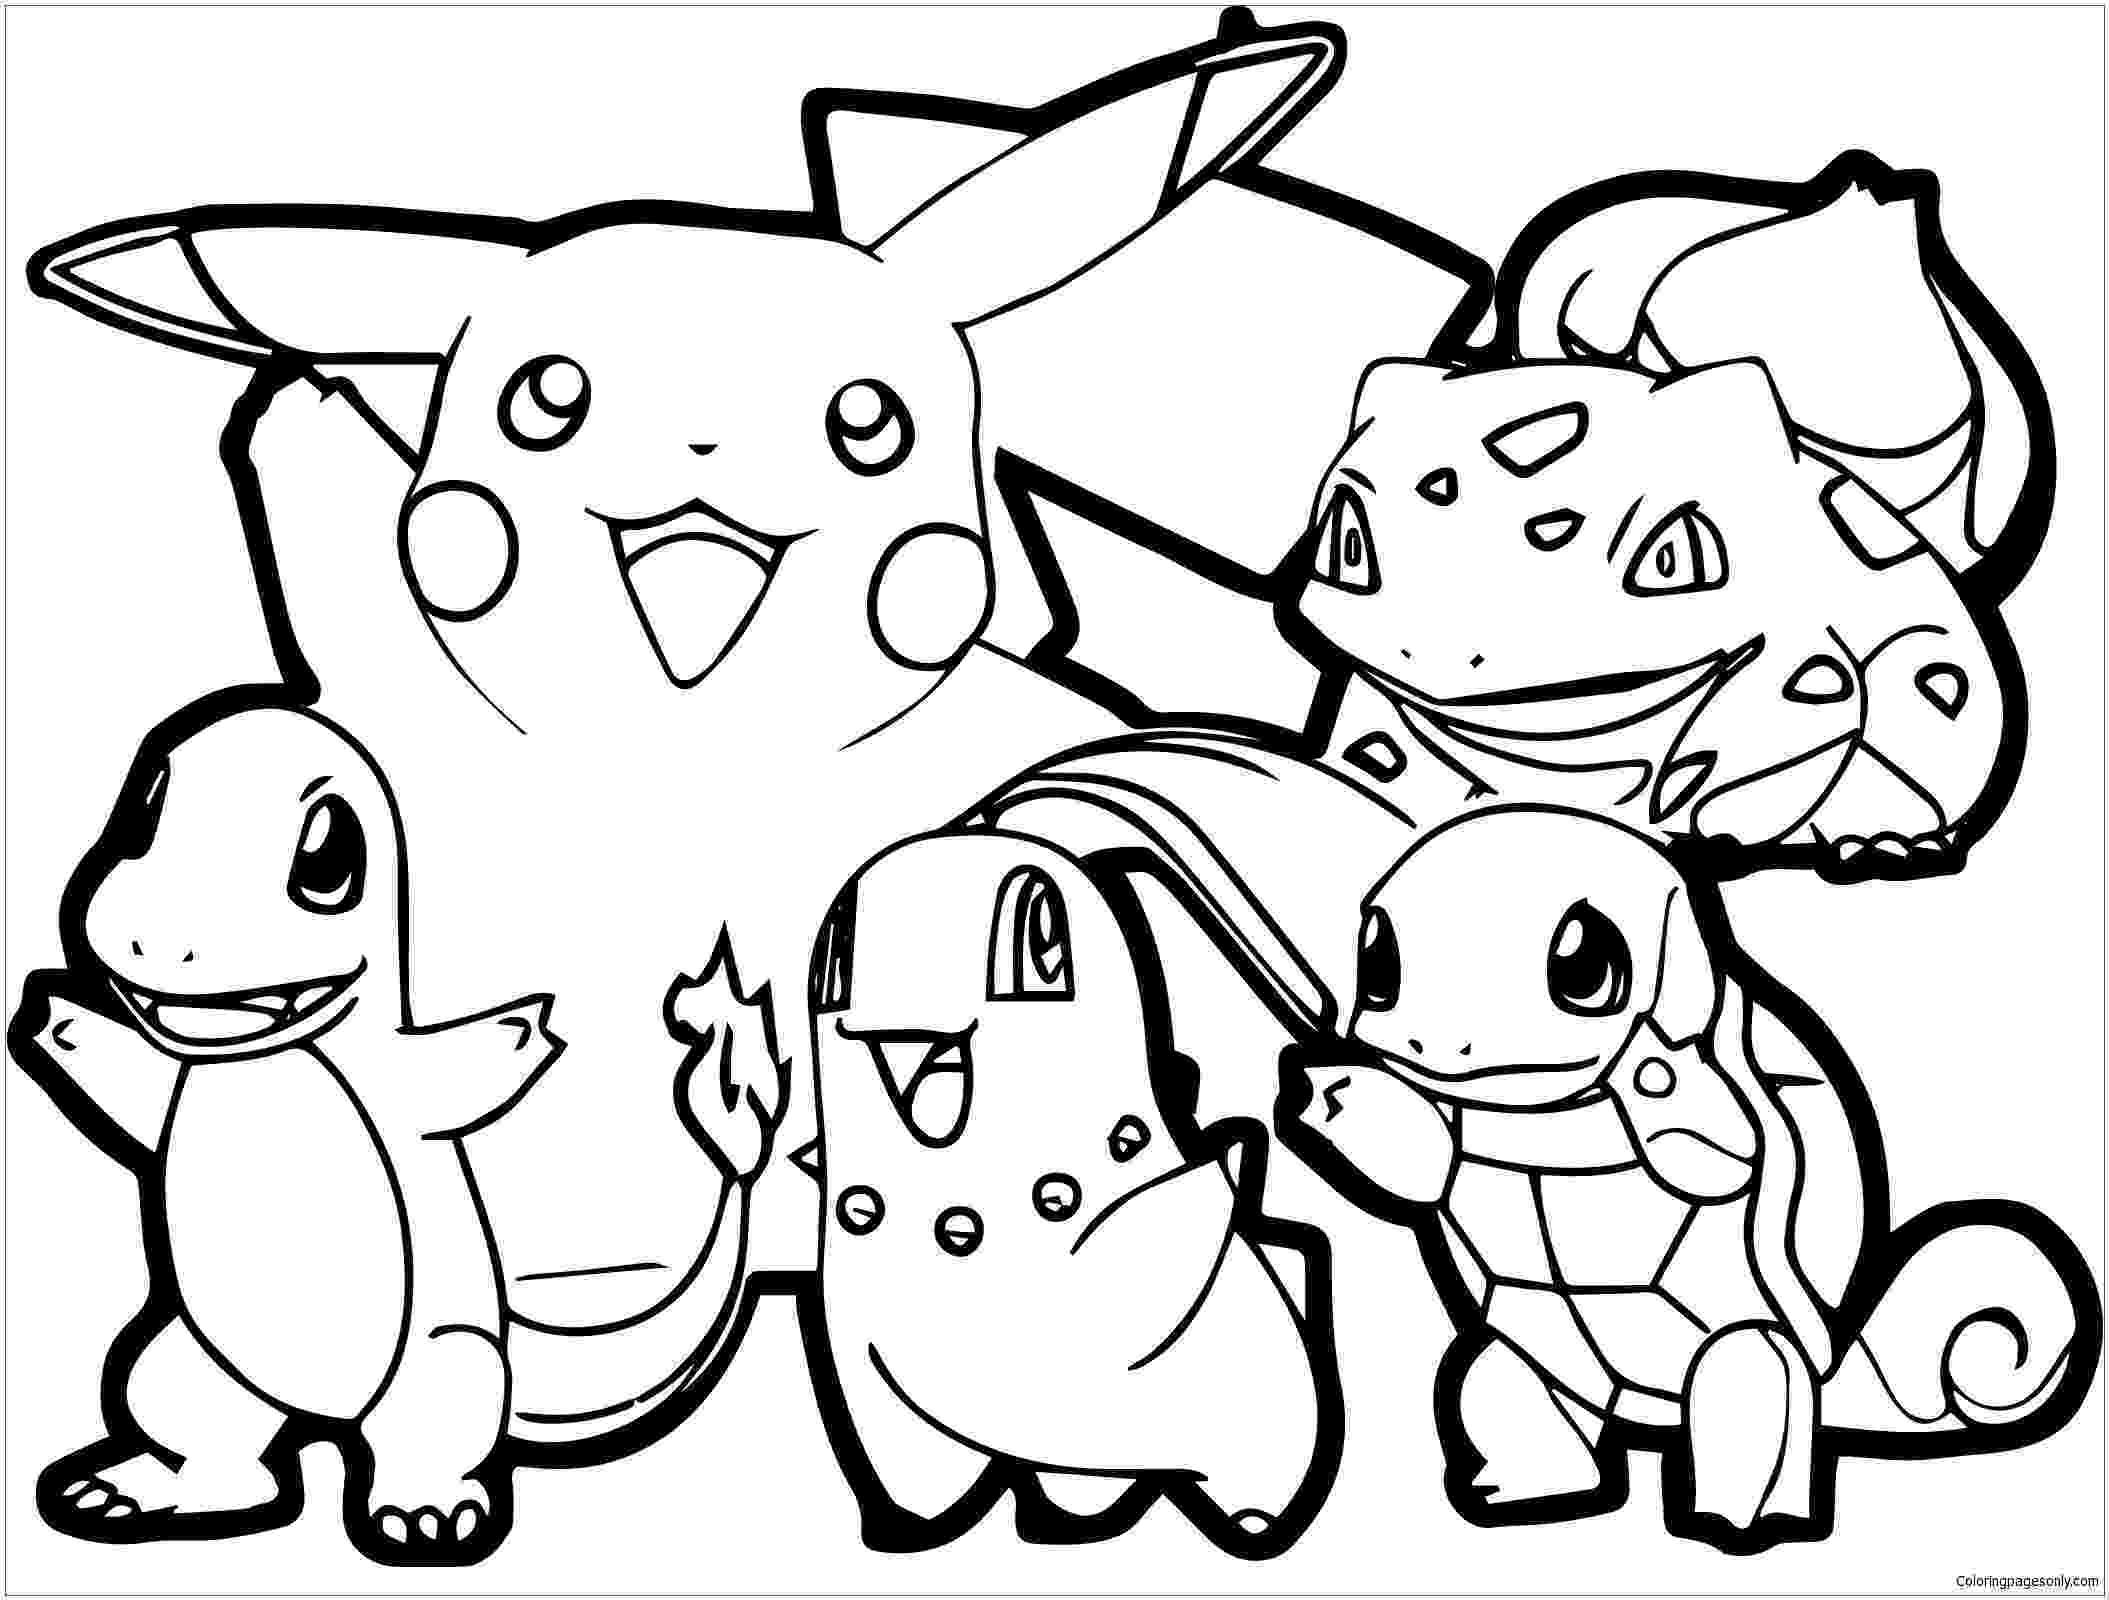 pokemon colouring pages online free pokemon coloring pages join your favorite pokemon on an colouring pages online free pokemon